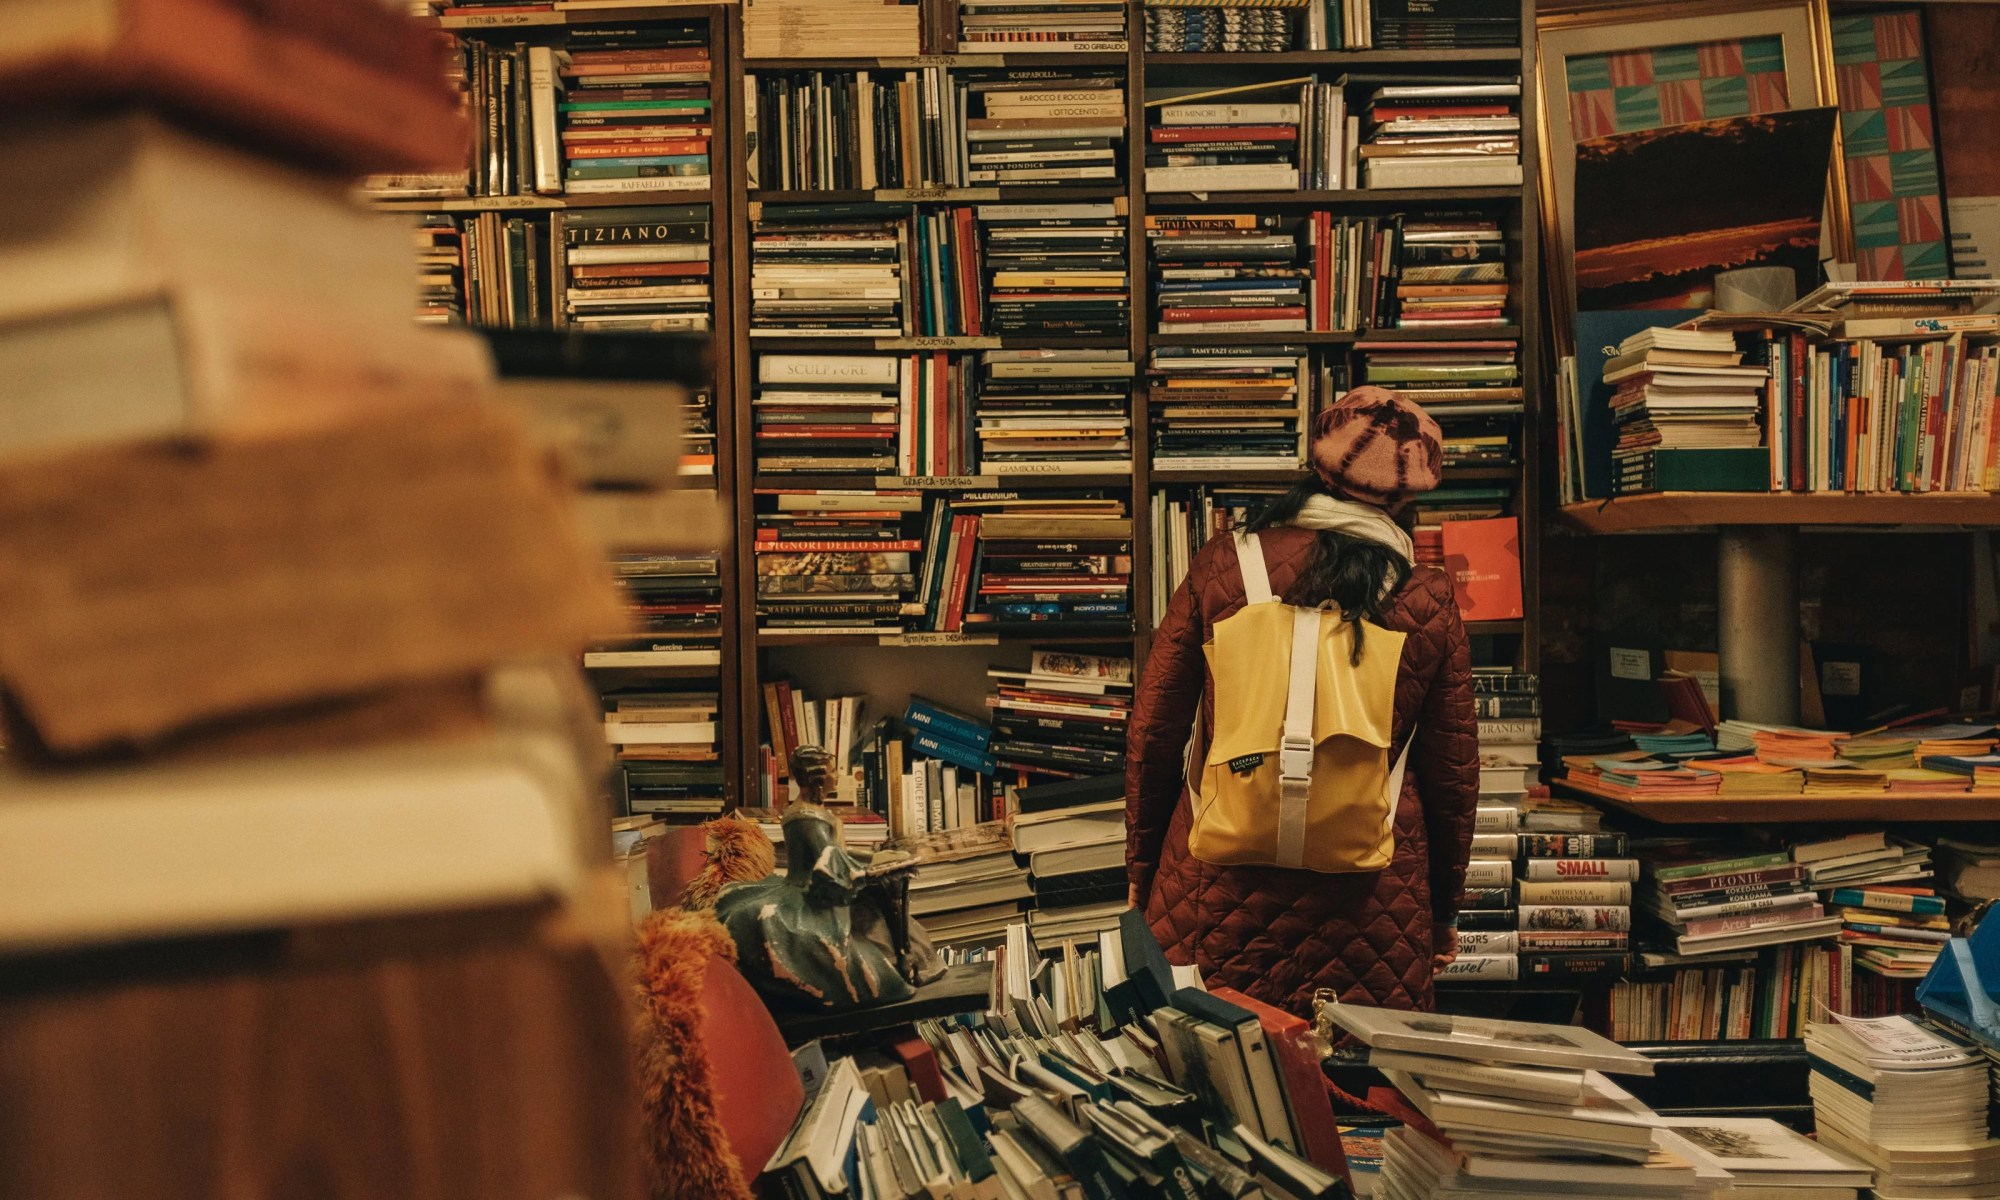 Cluttered bookshop in Venice, Italy